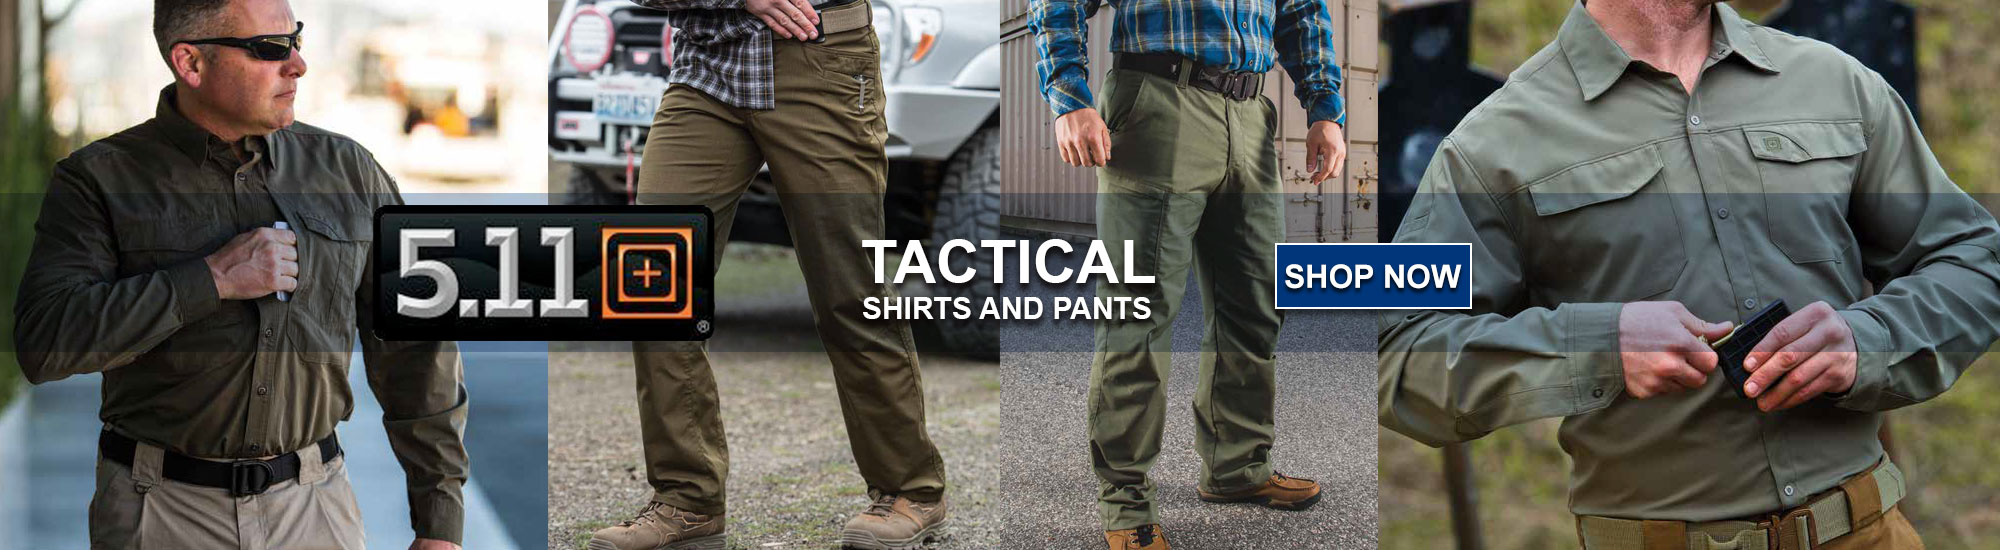 Shop 511Tactical Shirts and Pants